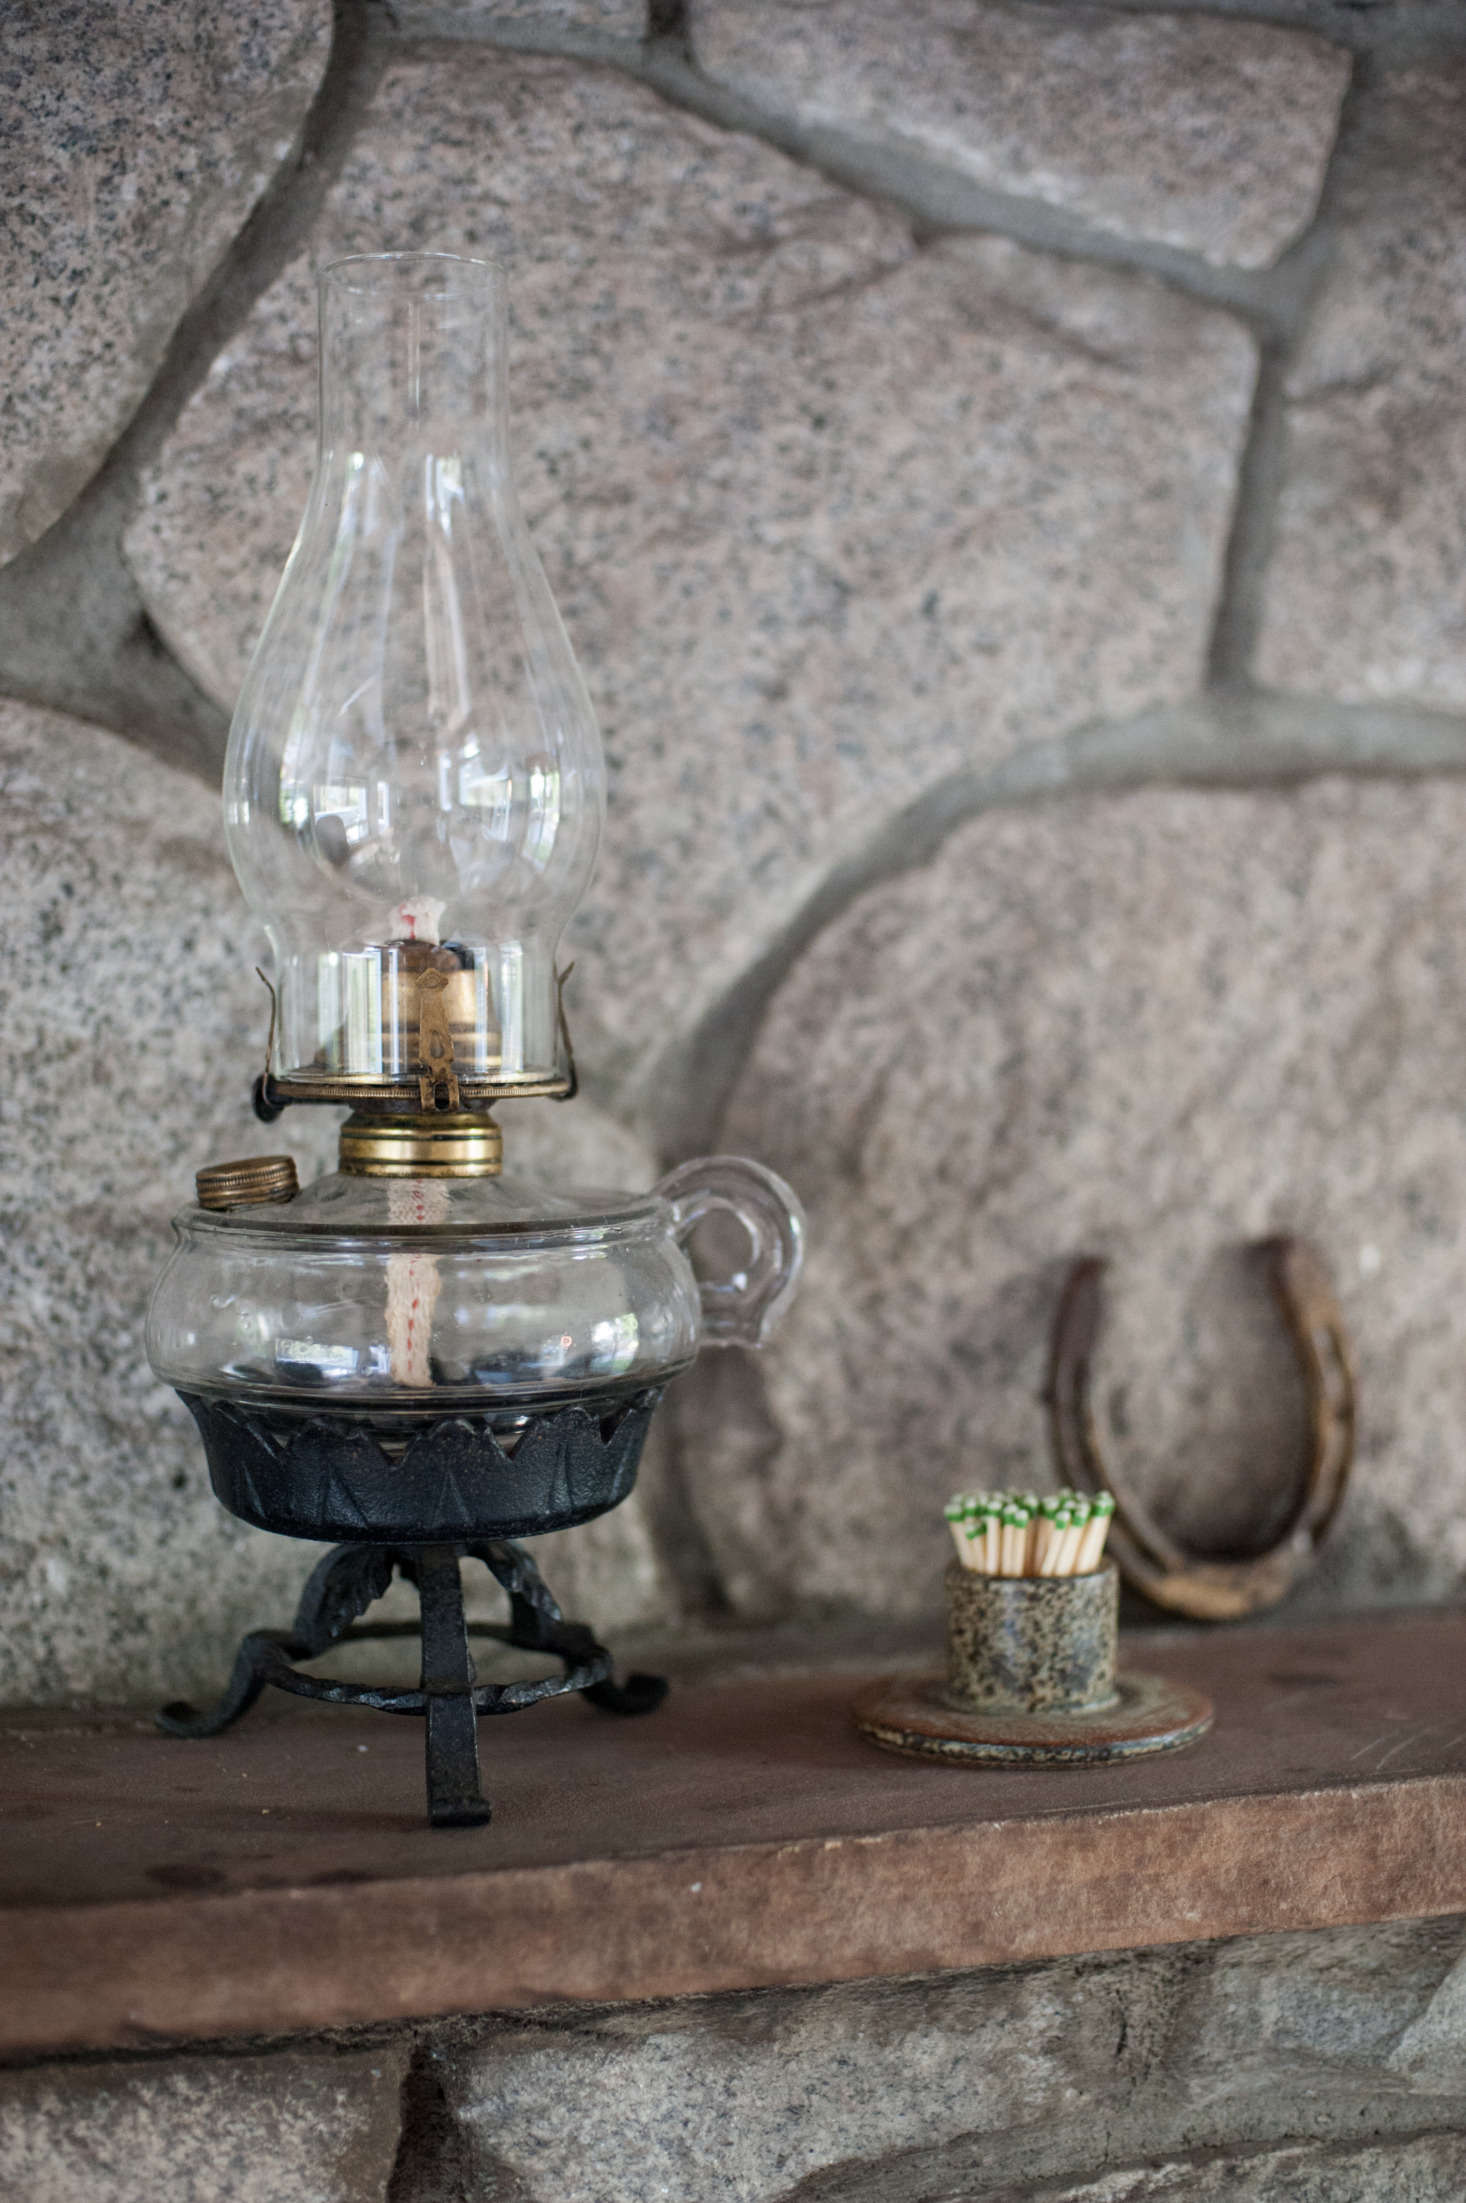 """The kerosene lamp was a housewarming gift from a friend who picked it up on a visit home to Michigan: """"I love it, but so far have been too scared to use it,"""" says Leanne."""